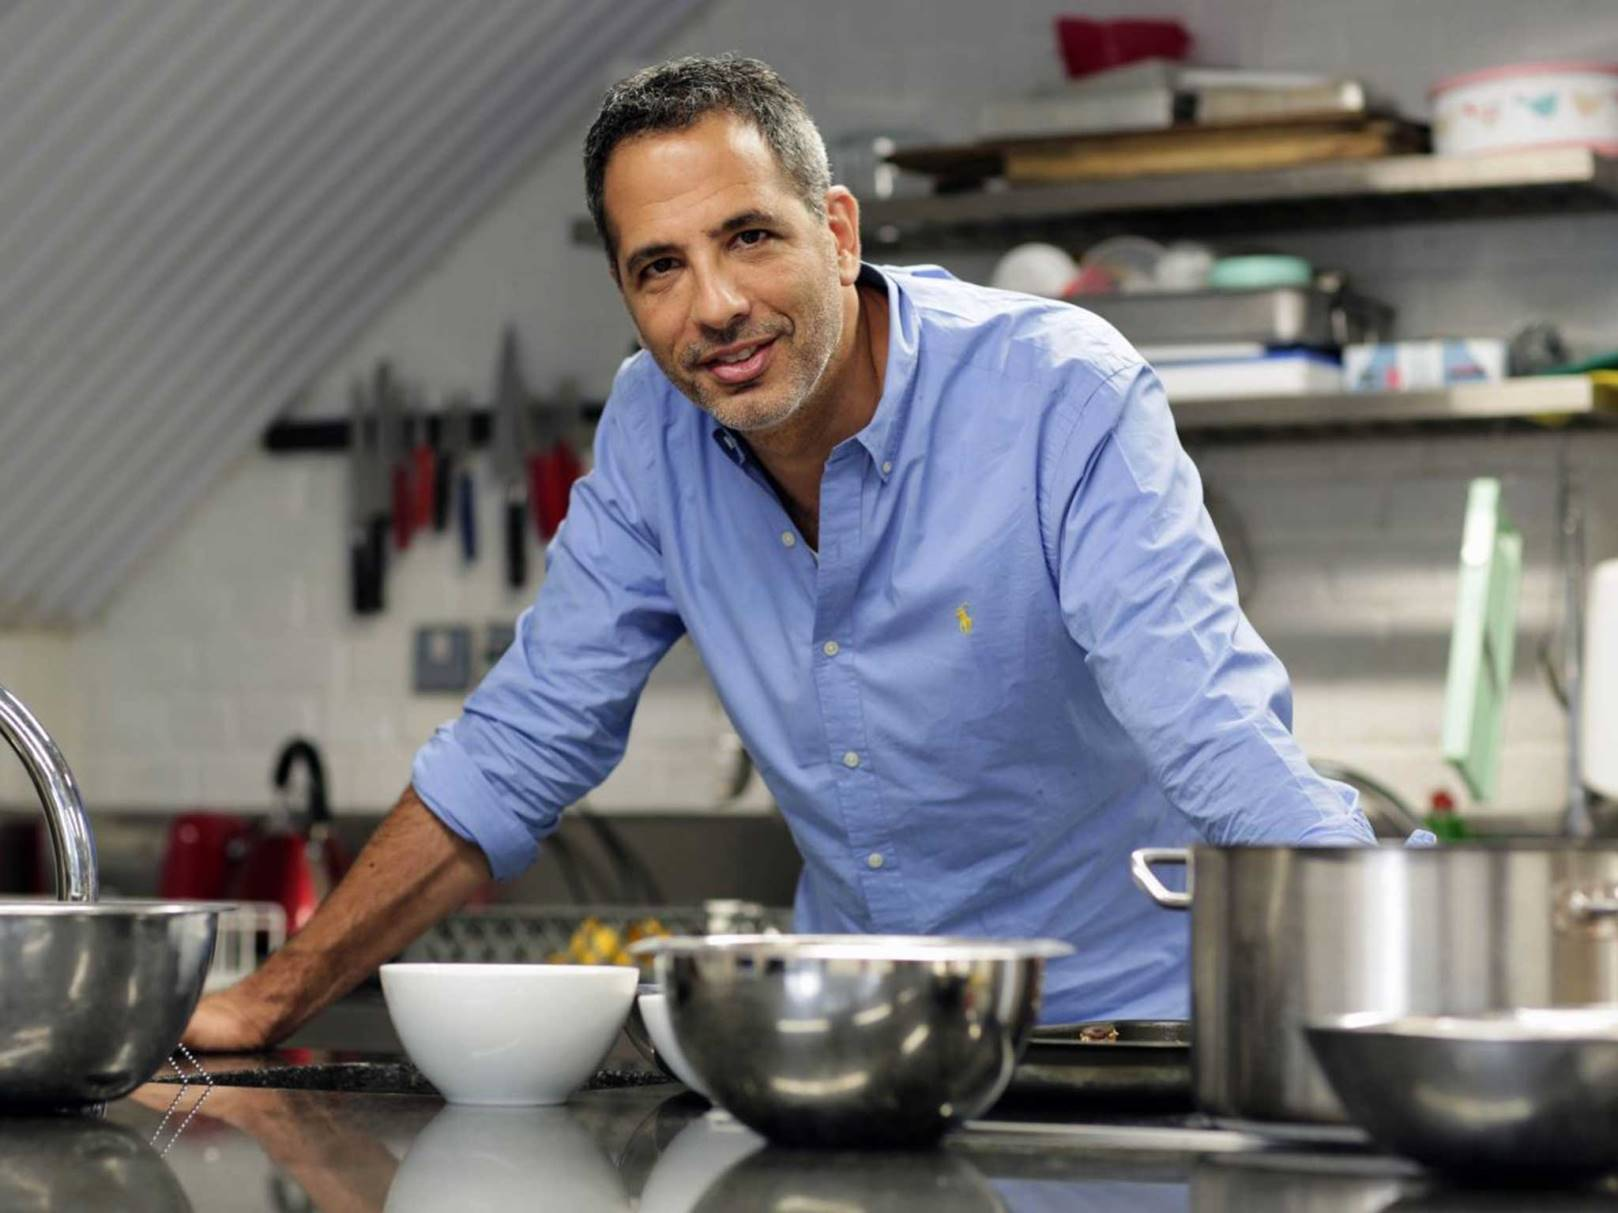 Chef Yotam Ottolenghi. Photo by Justin Sutcliffe/The Independent